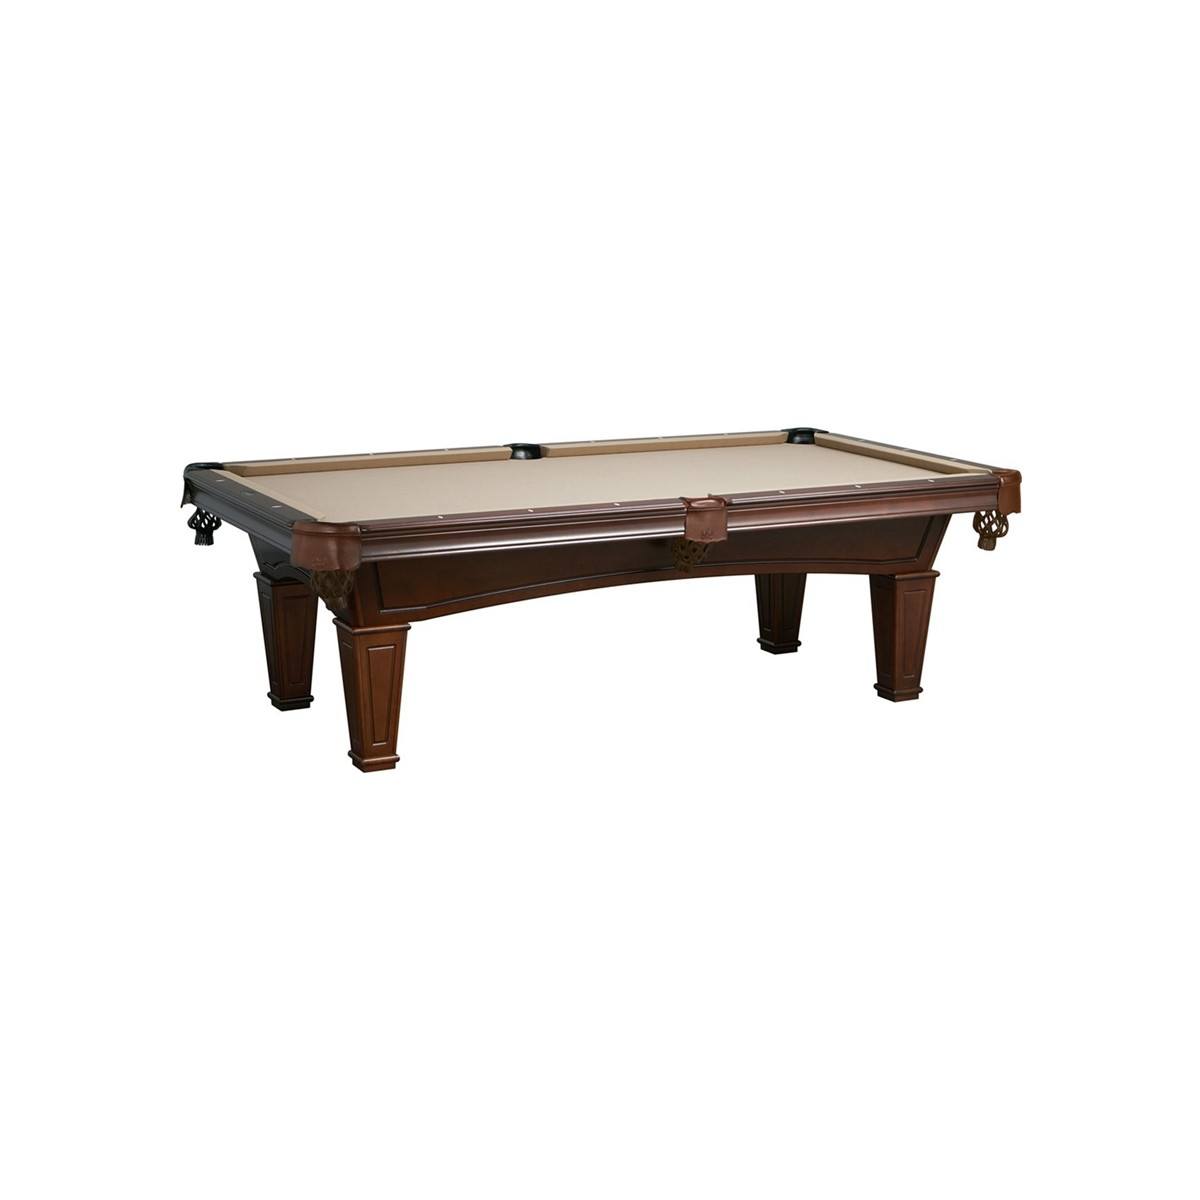 Imperial The Washington 8Ft - Antique Walnut